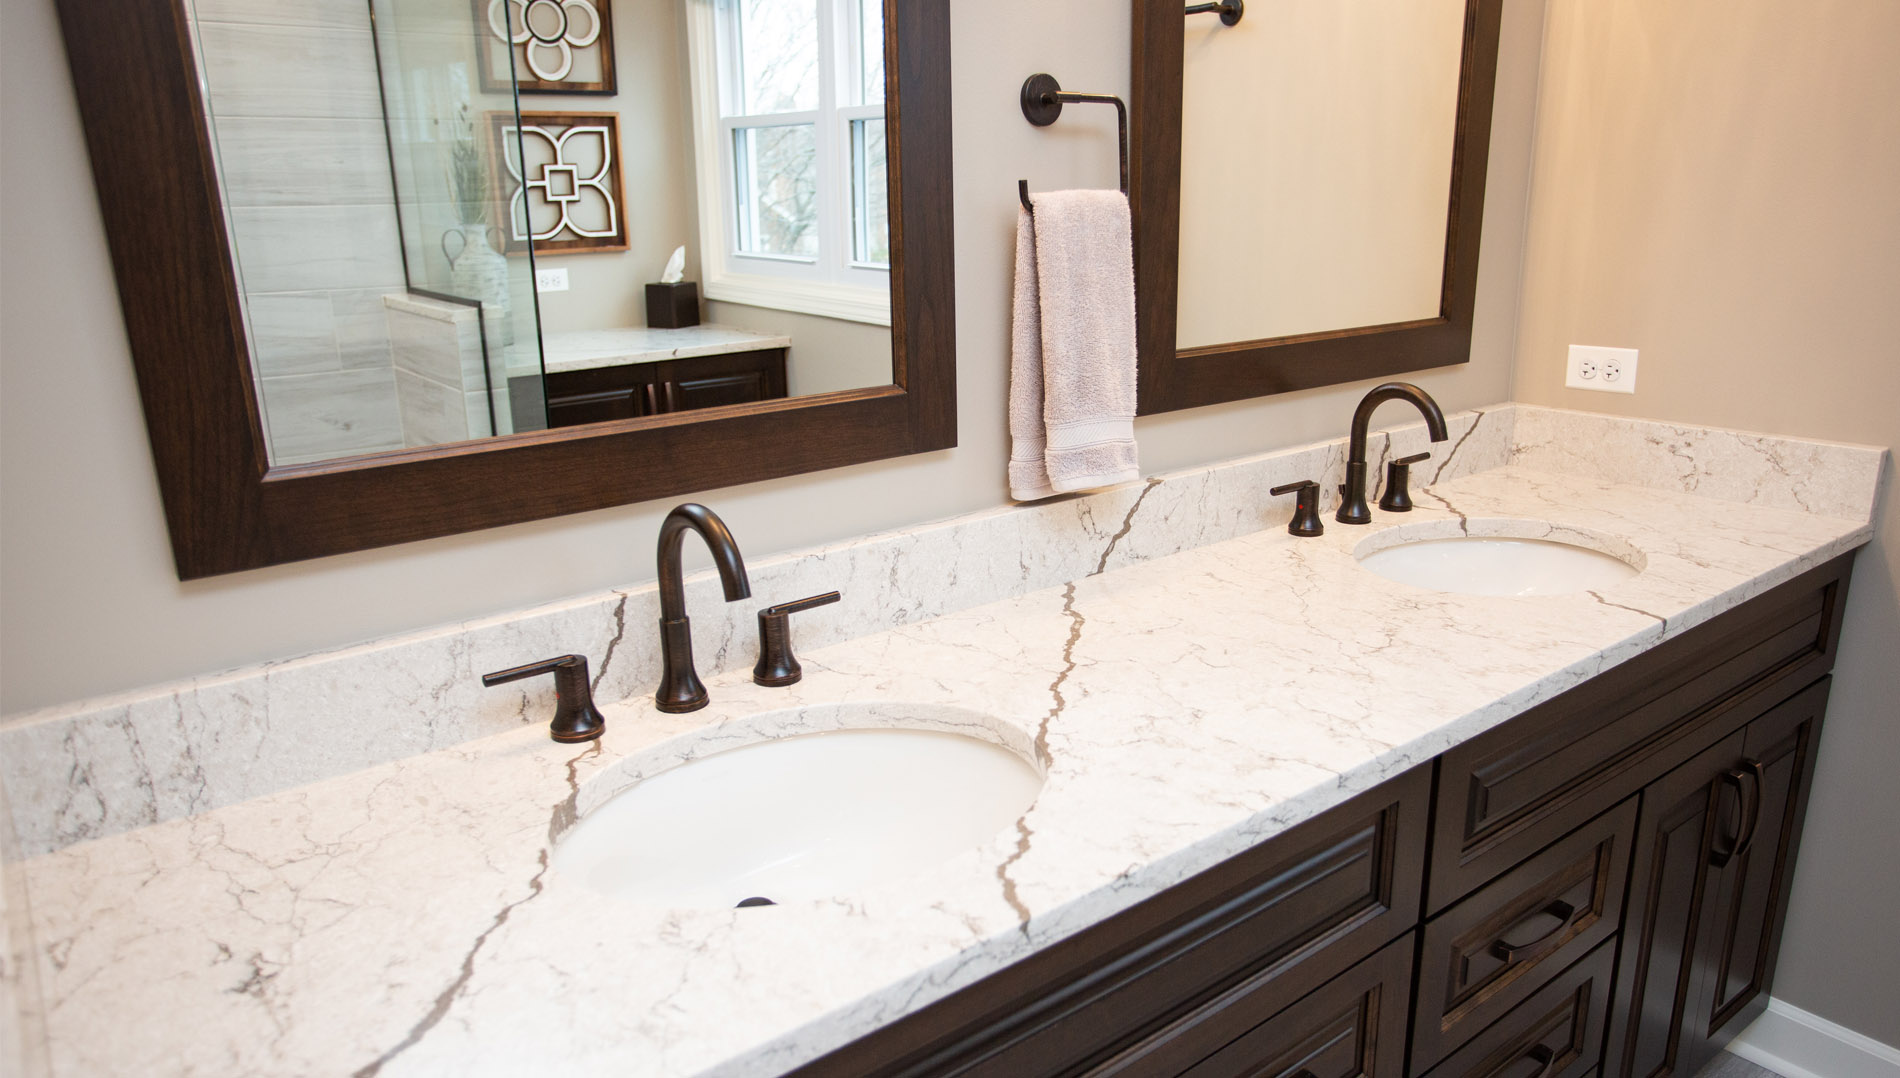 Double vanity with undermount oval sinks and counters topped with Vicostone Diamante quarts